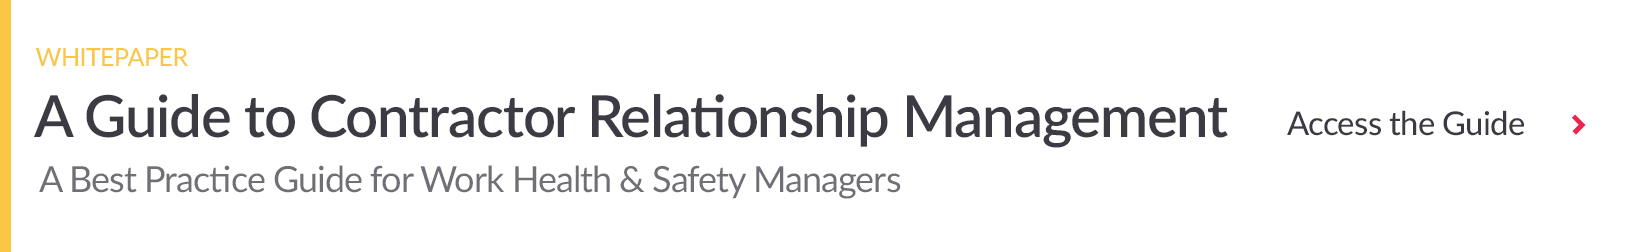 Download Contractor Relationship Management Guide